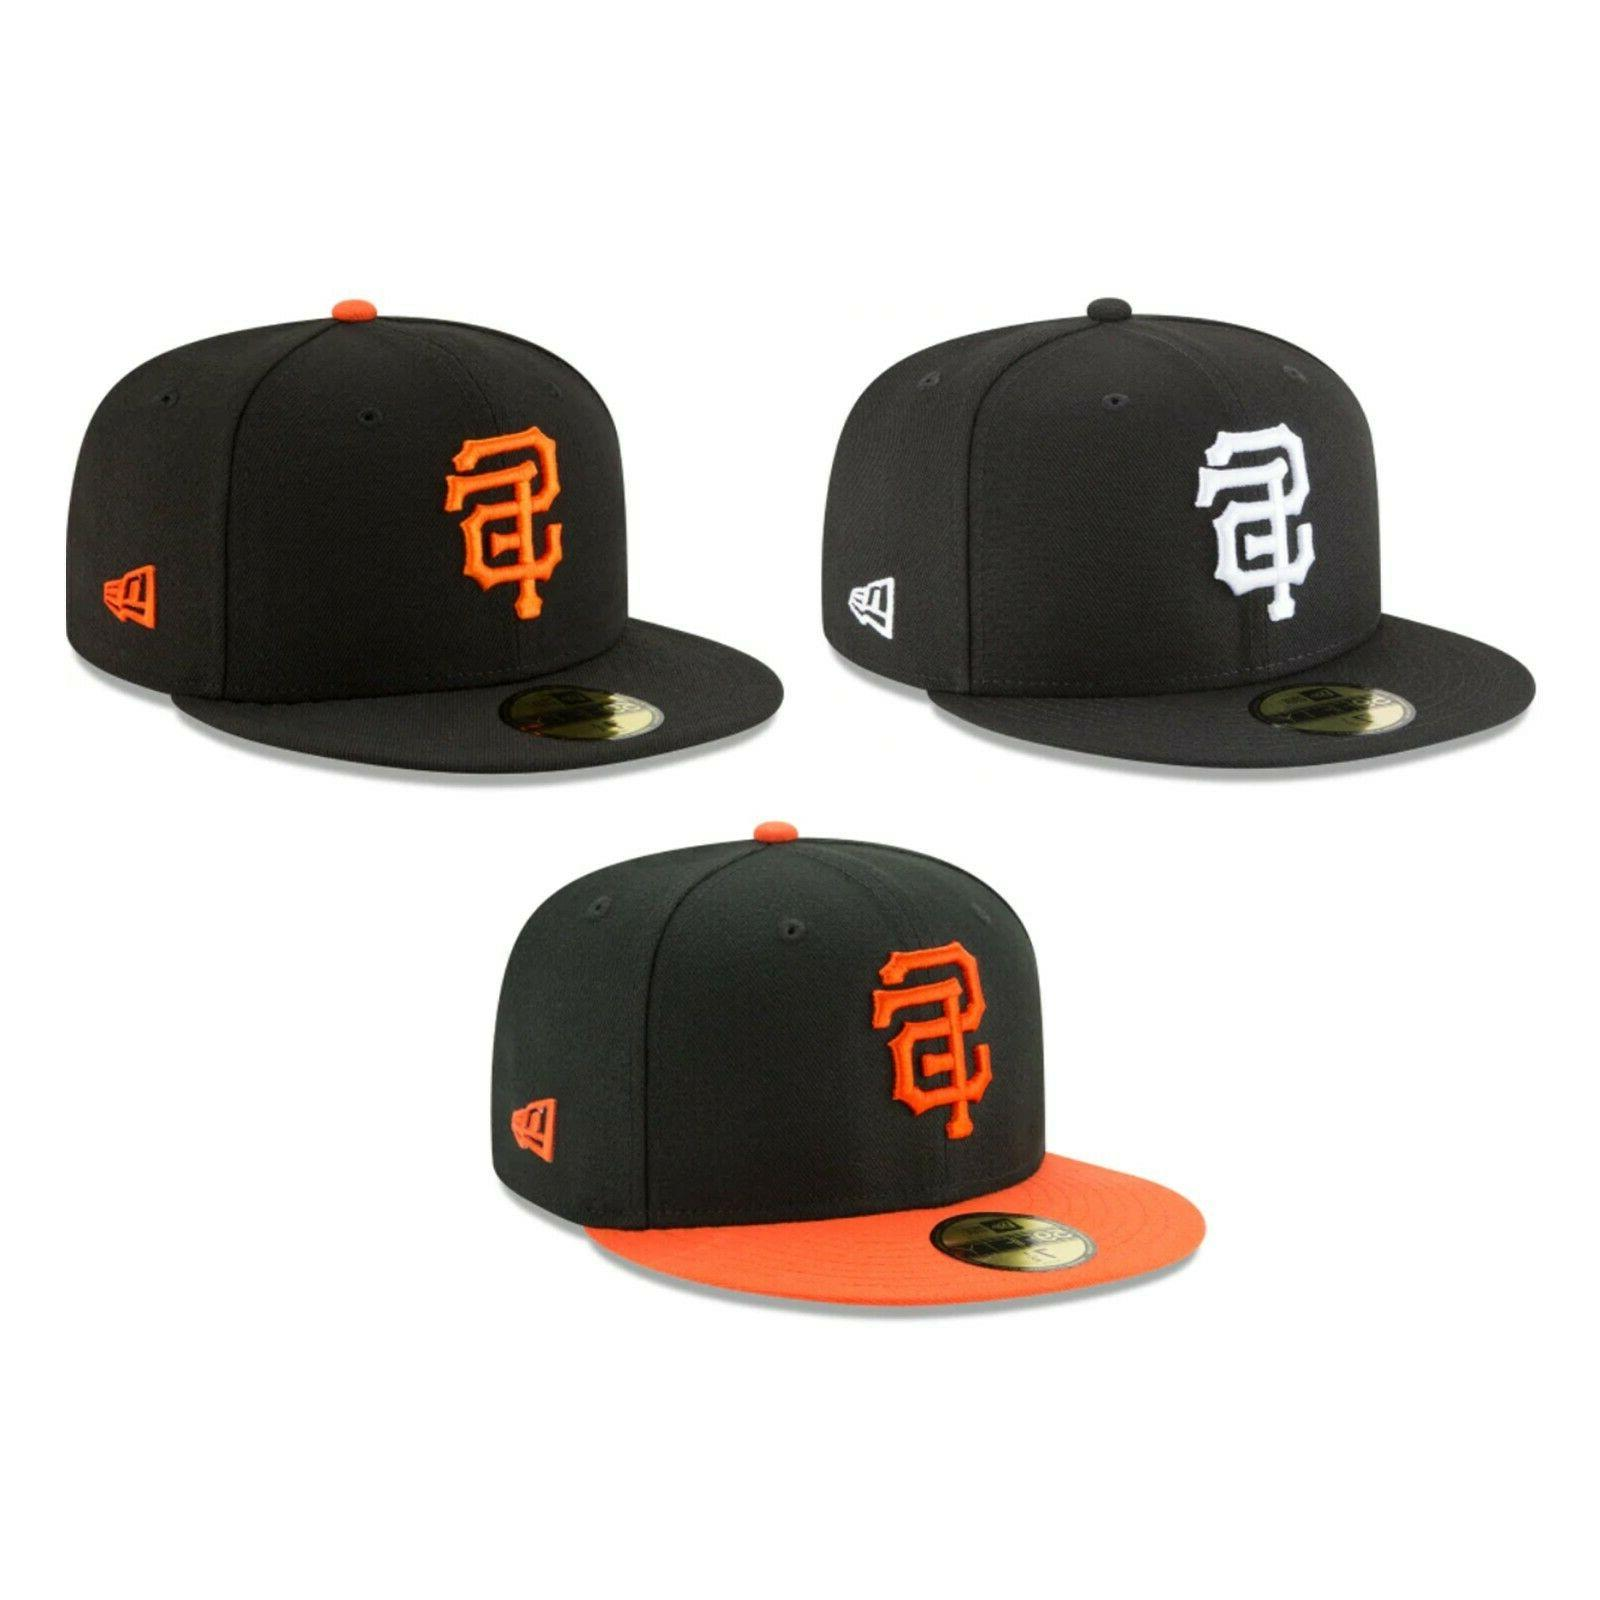 san francisco giants sfg mlb authentic 59fifty